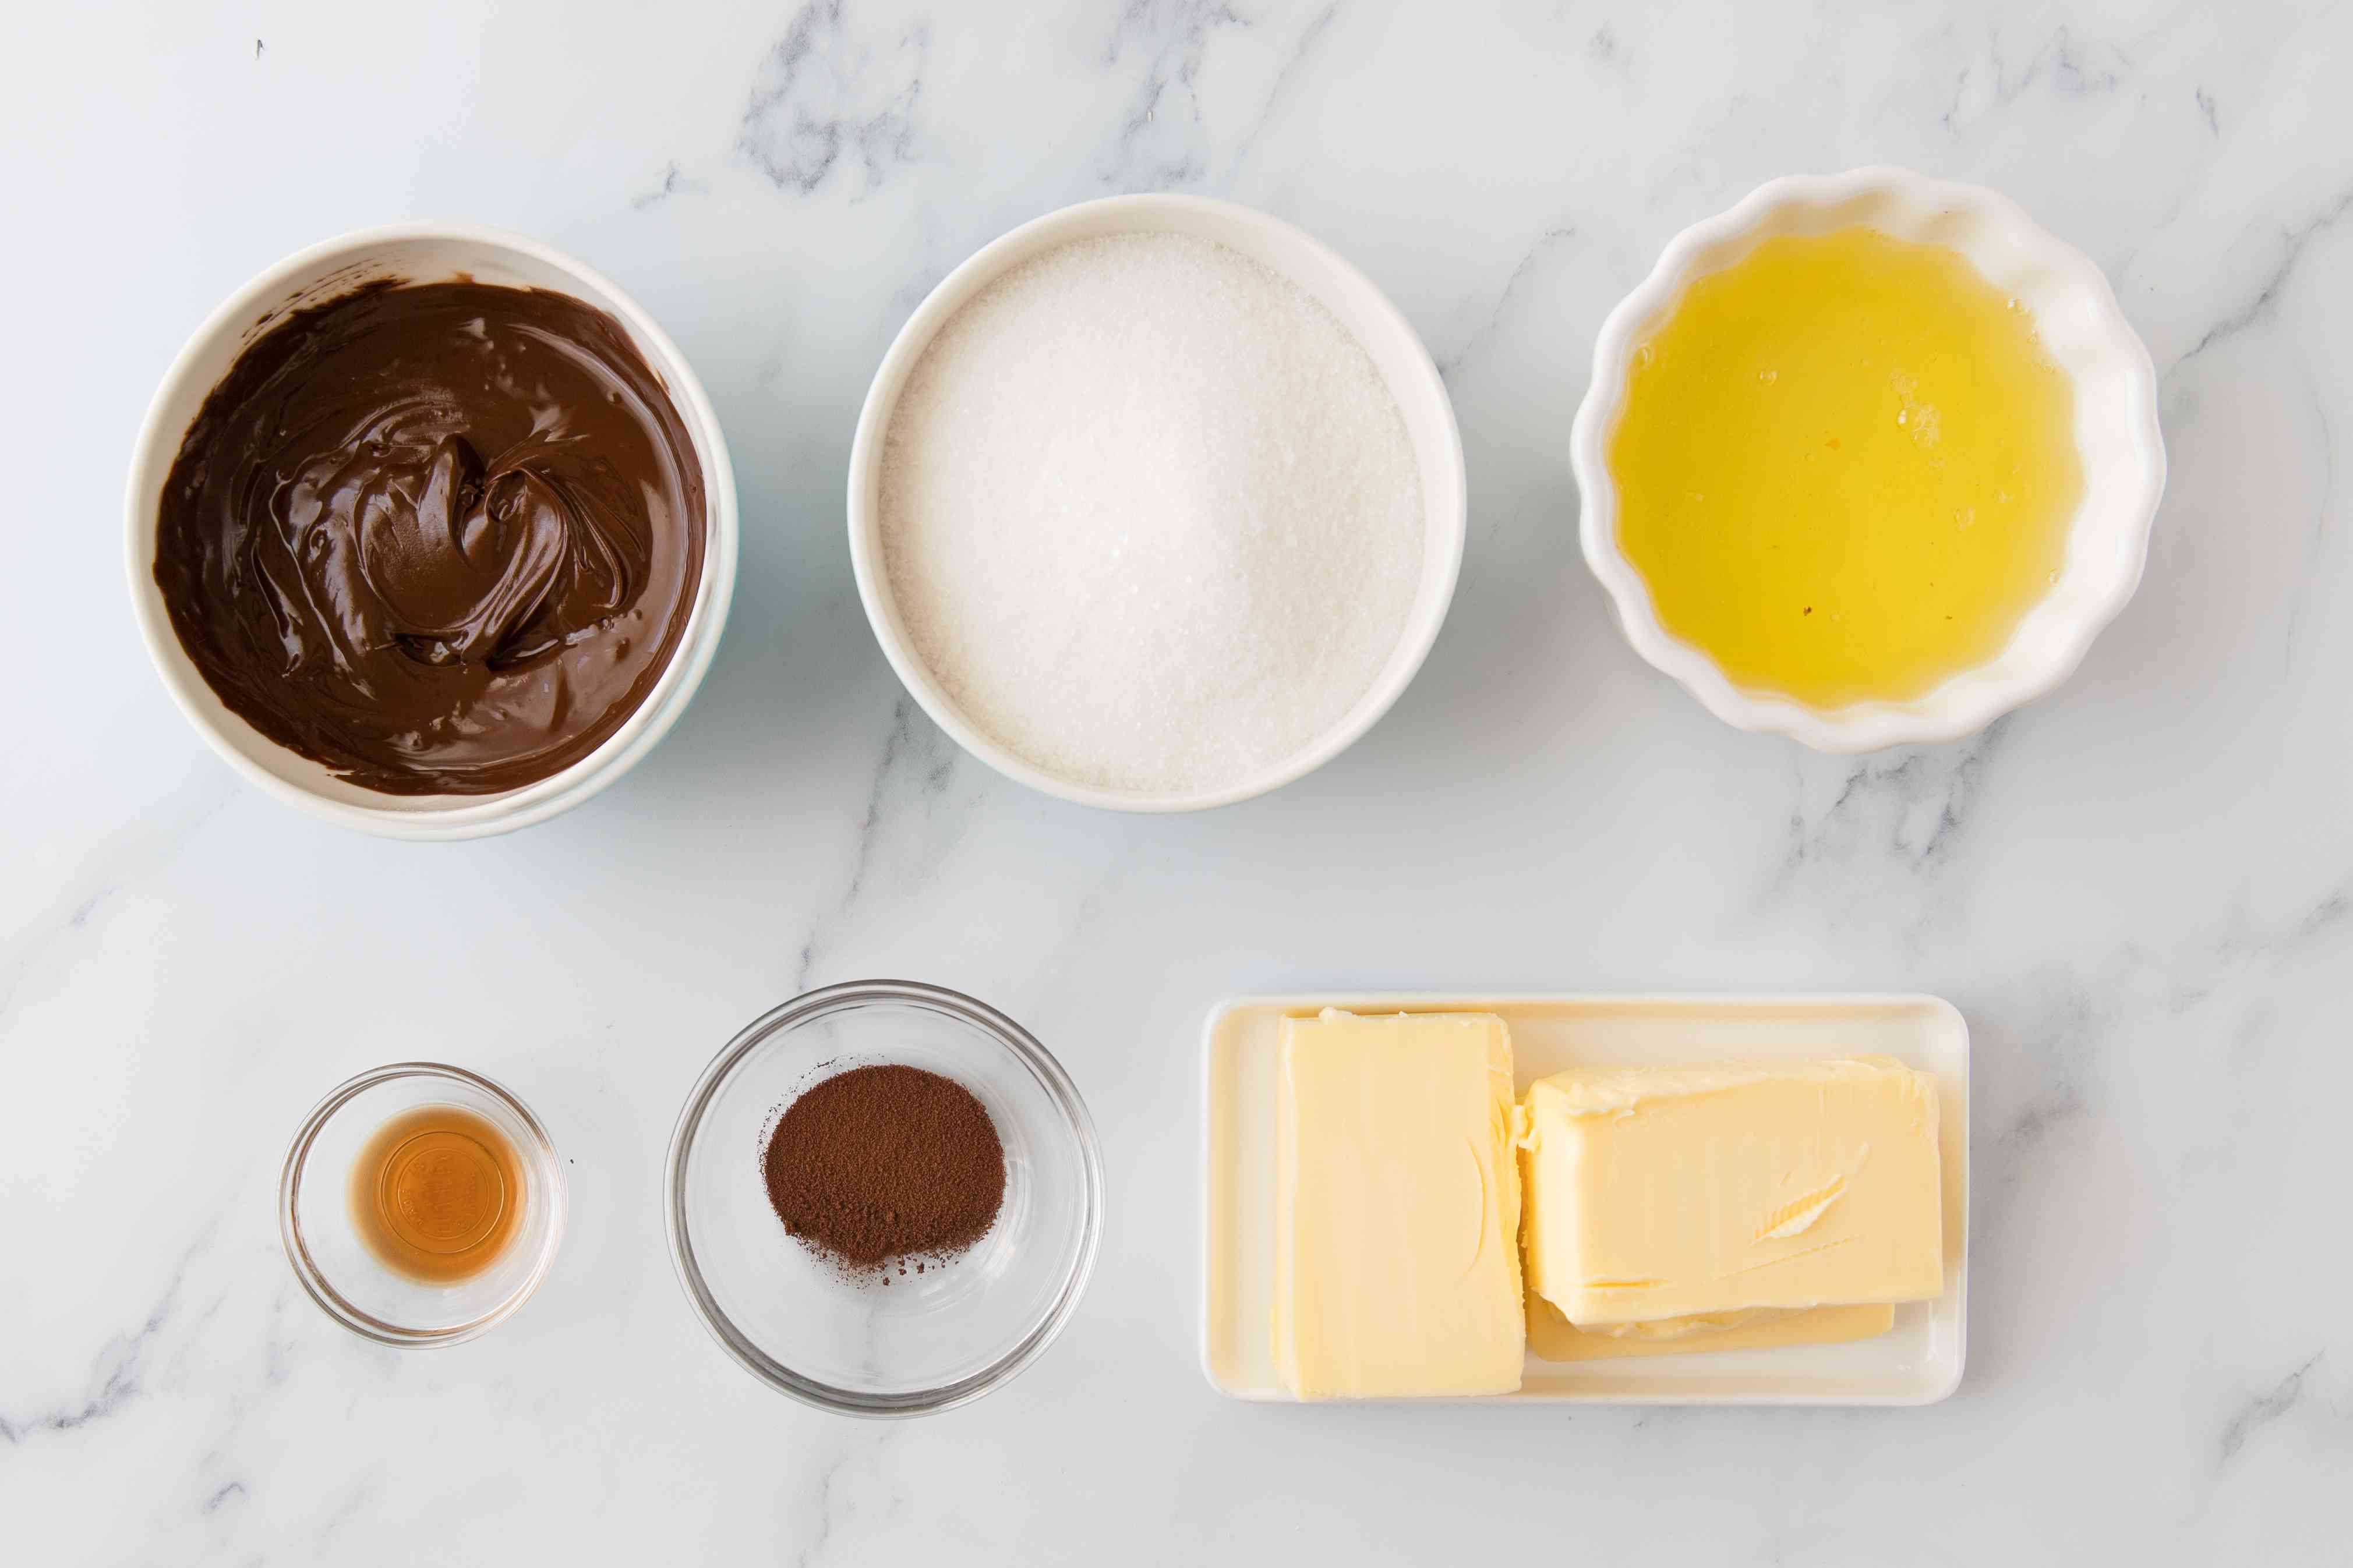 Ingredients for frosting